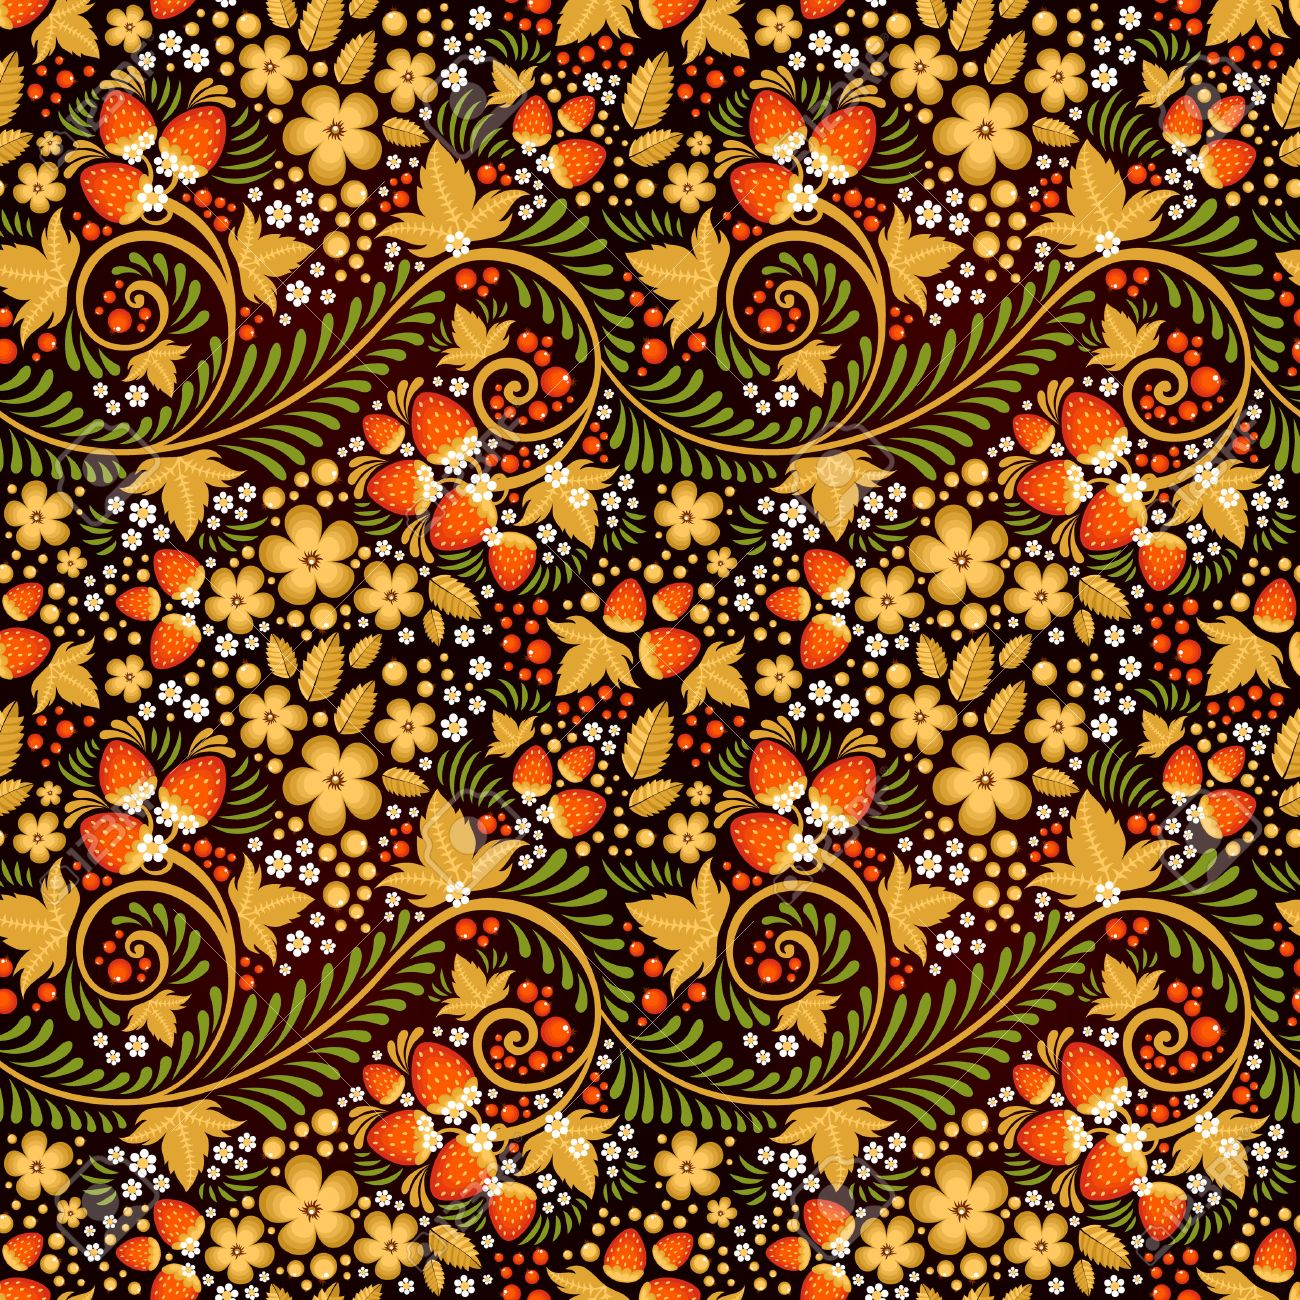 Festive khokhloma seamless pattern with traditional floral elements - berries and leaves - 24233362